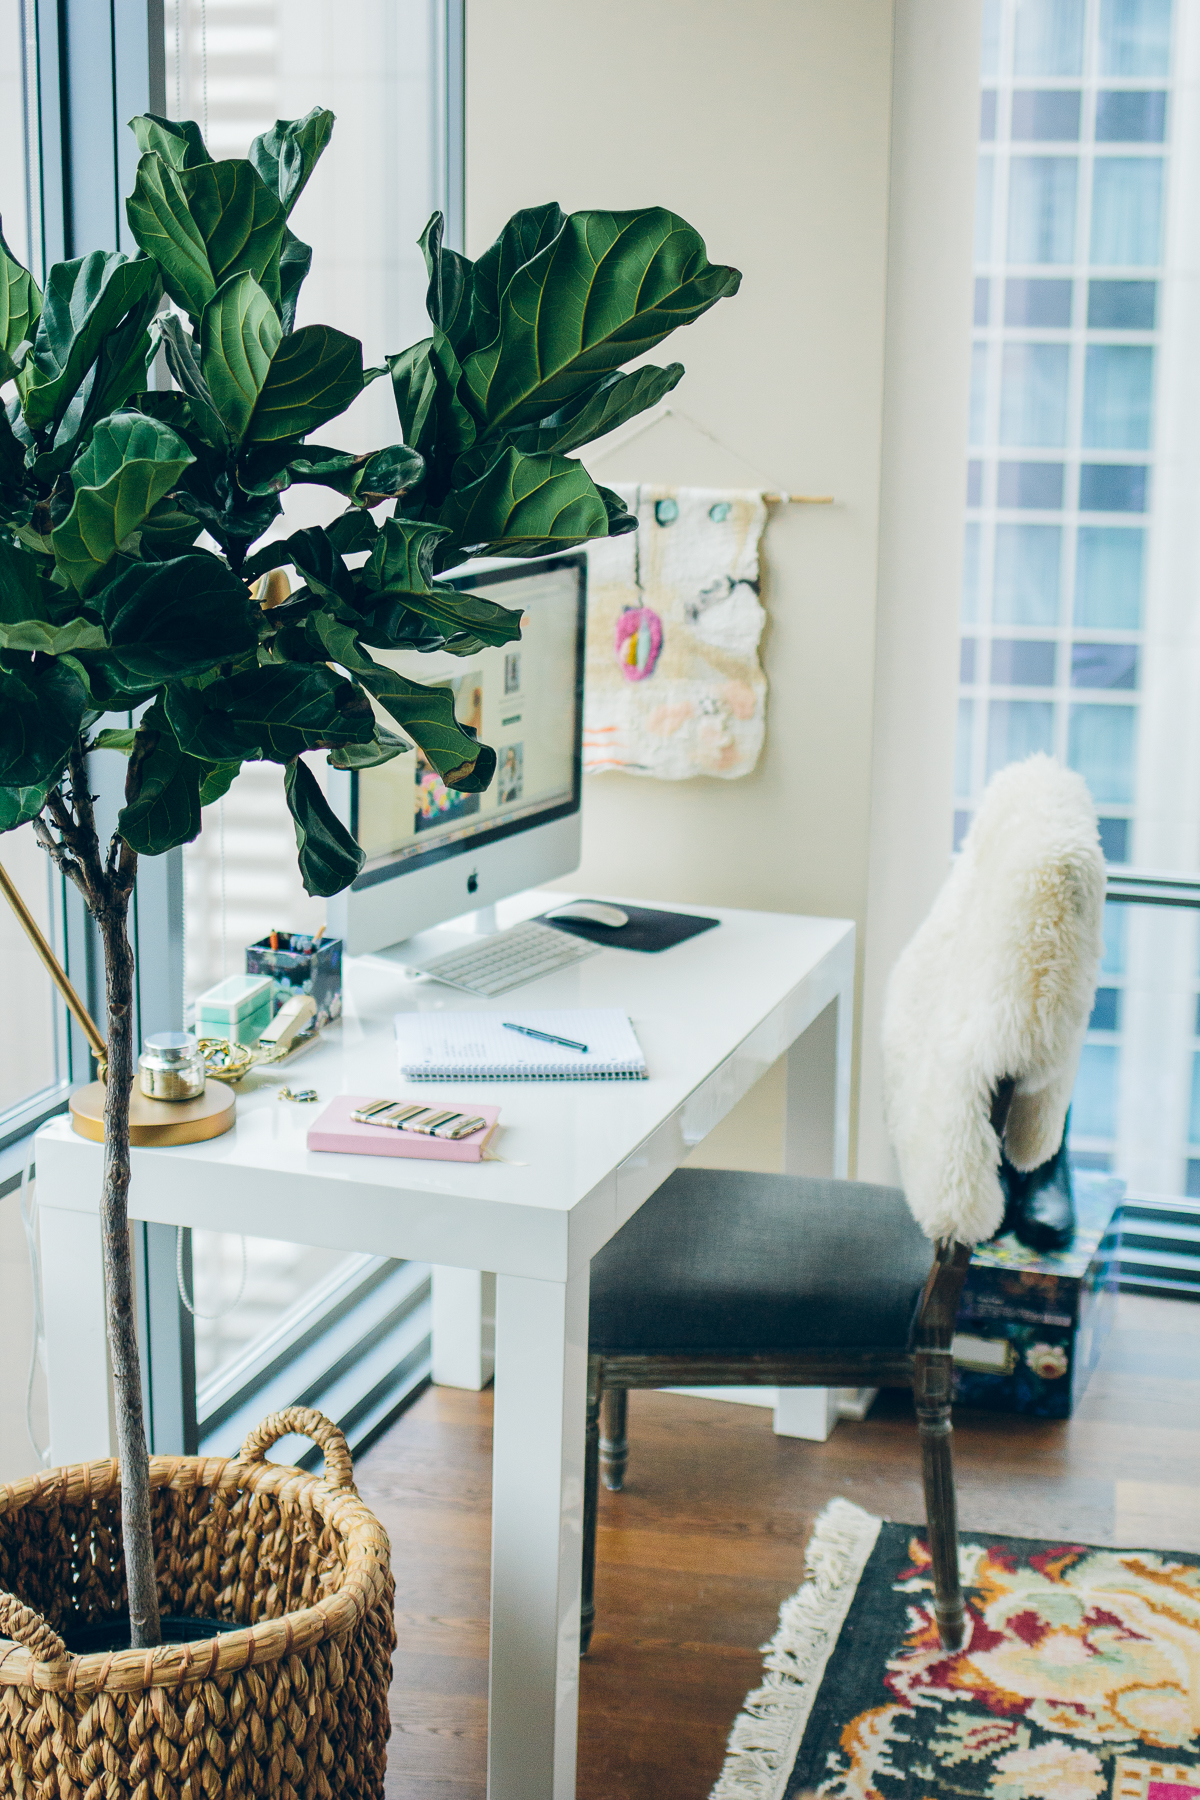 how to create an inspiring workspace, cynthia rowley office supplies — via @TheFoxandShe #inspiredoffice #quillxcynthiarowley